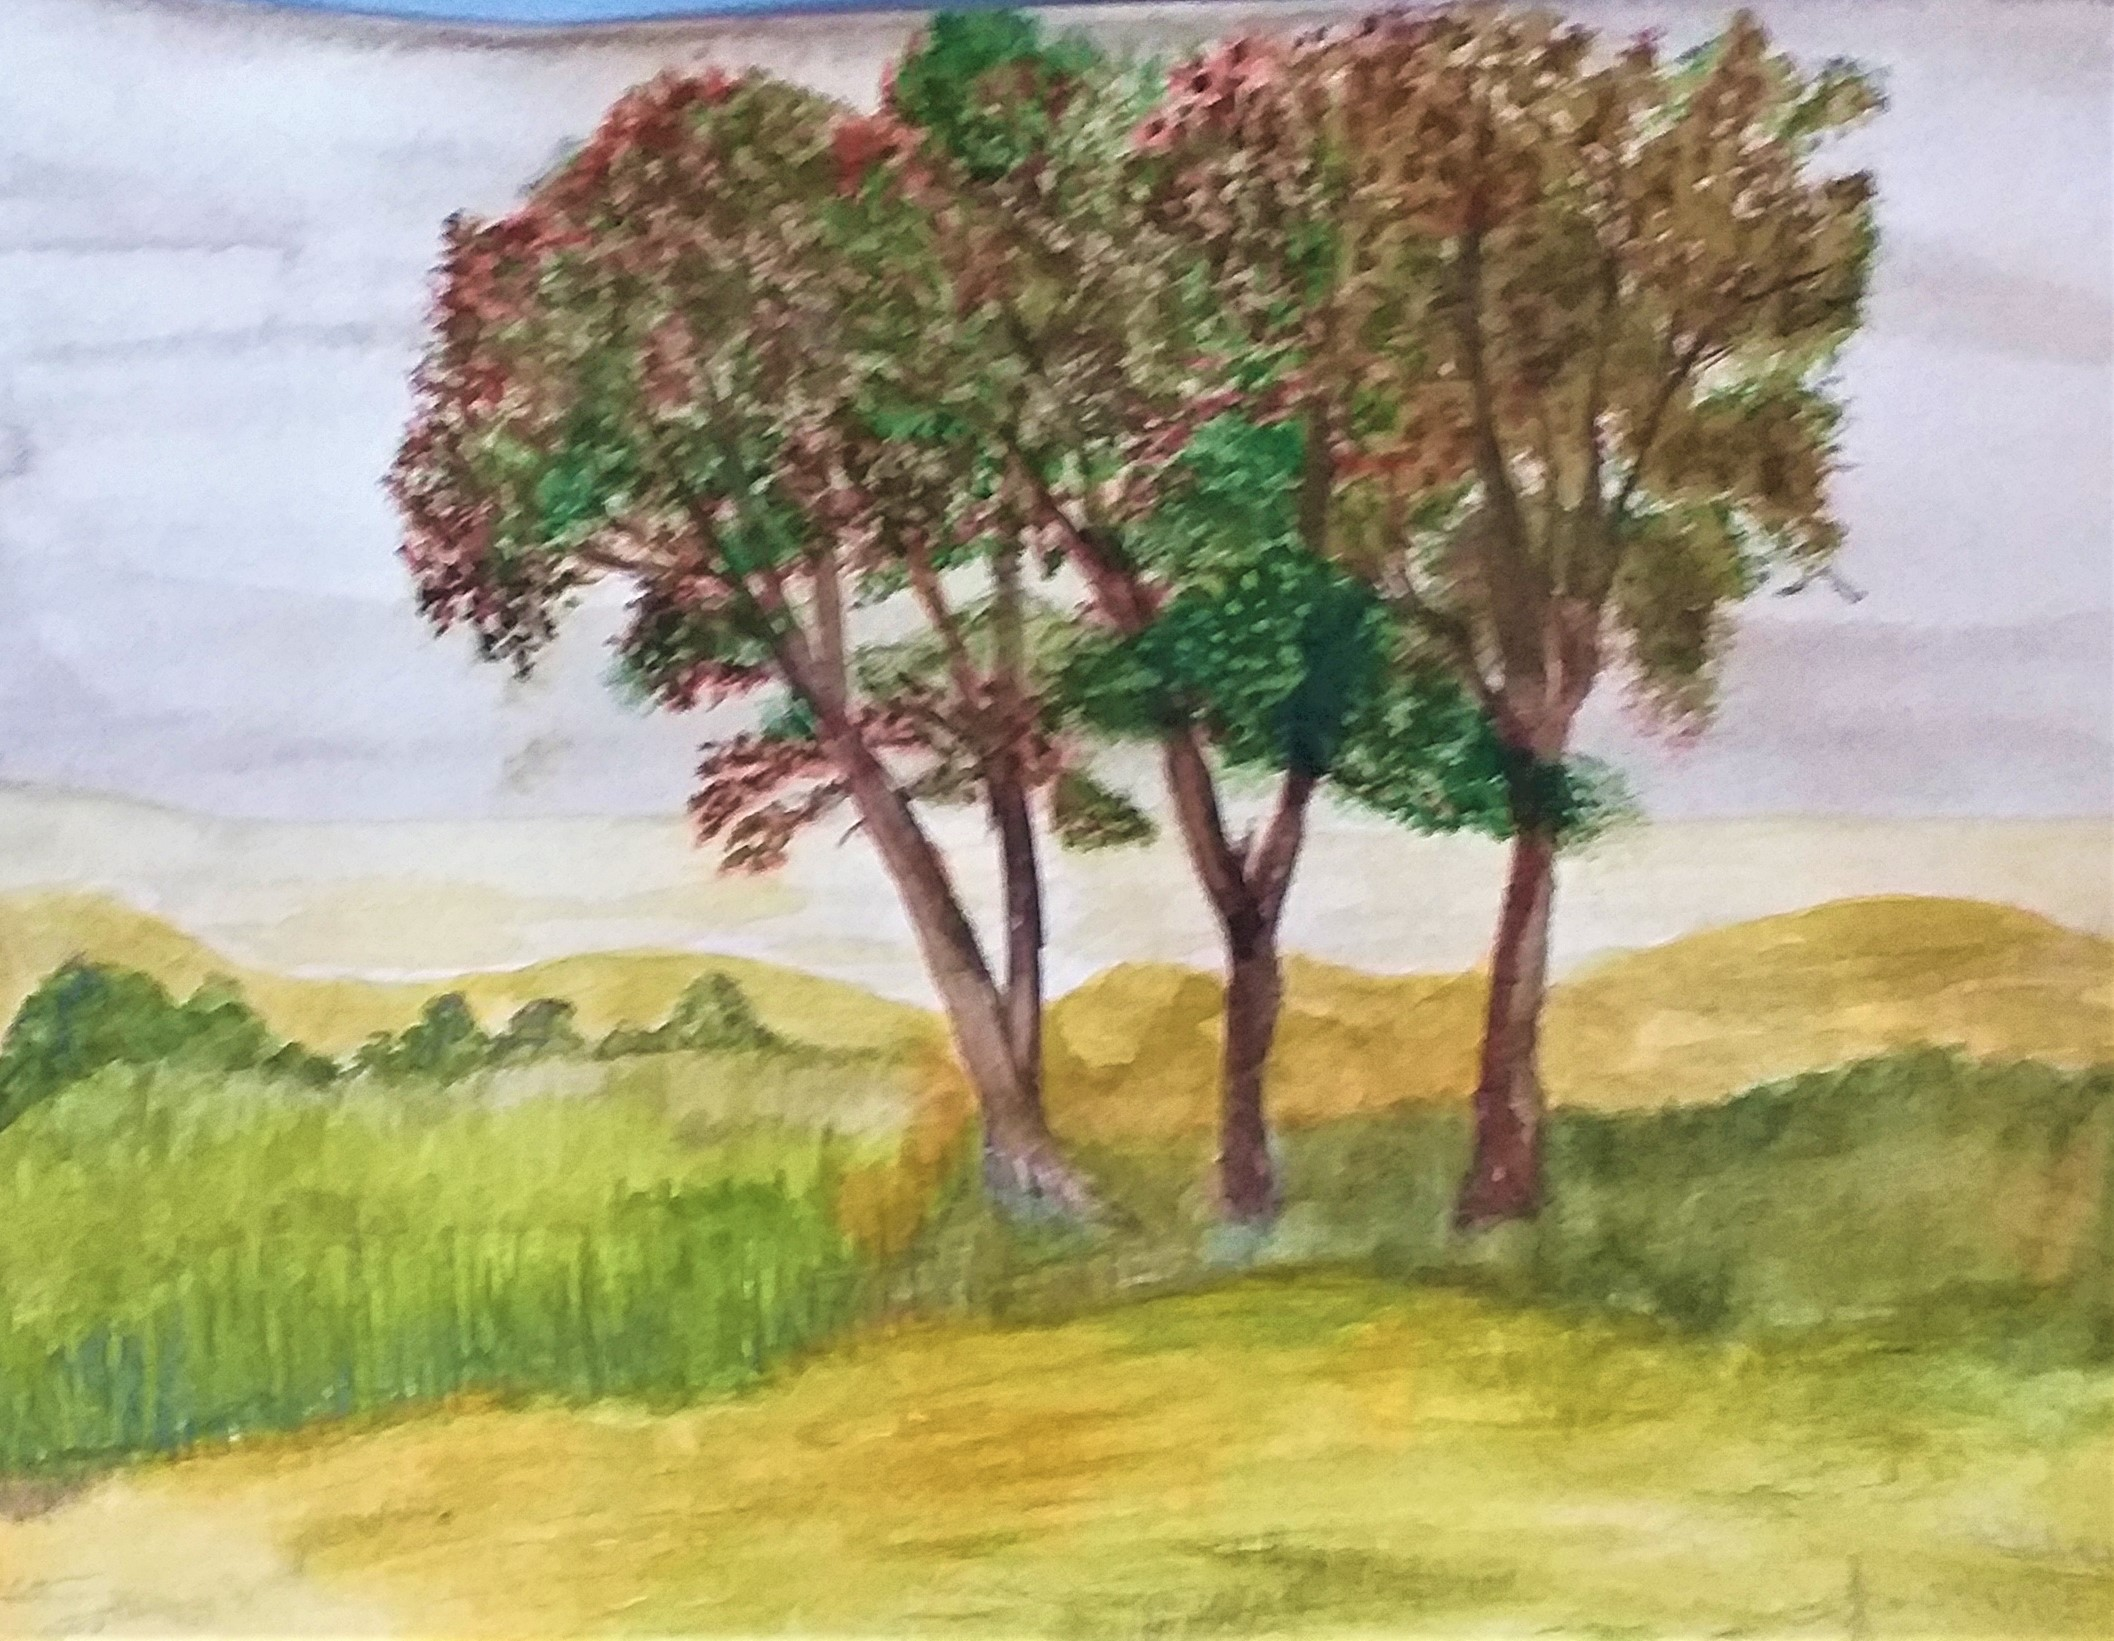 Students's work painted at Watercolour Art Course